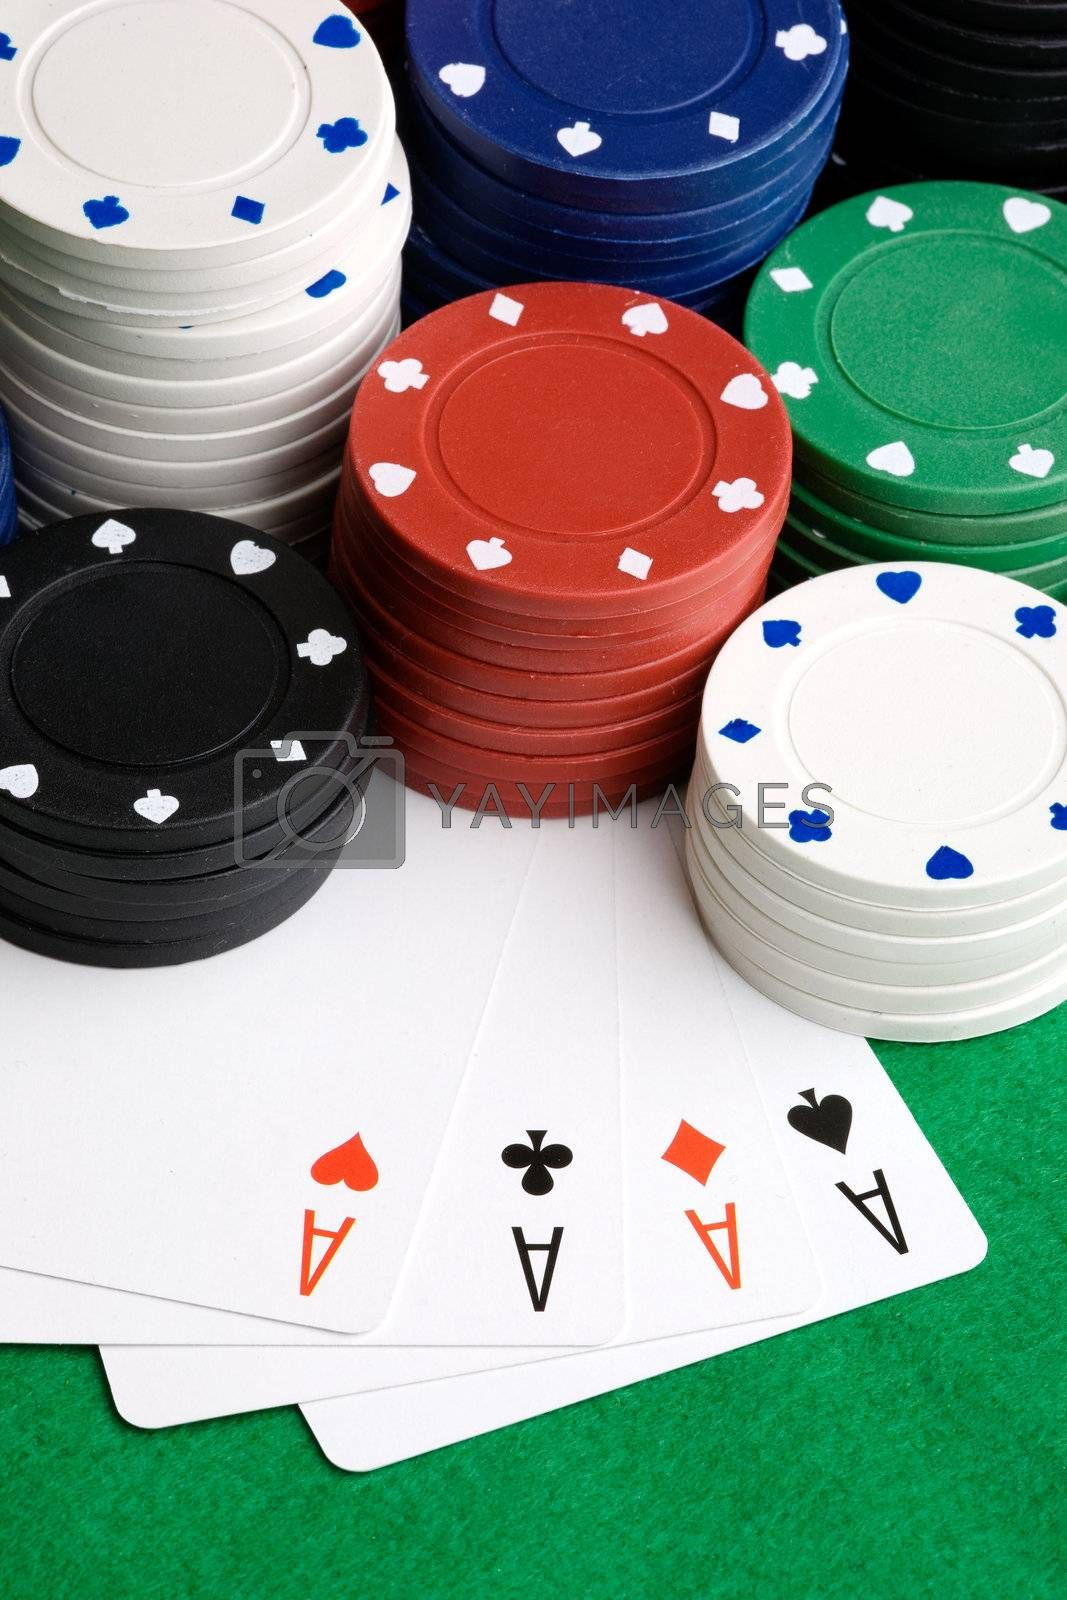 Four Aces in a poker hand